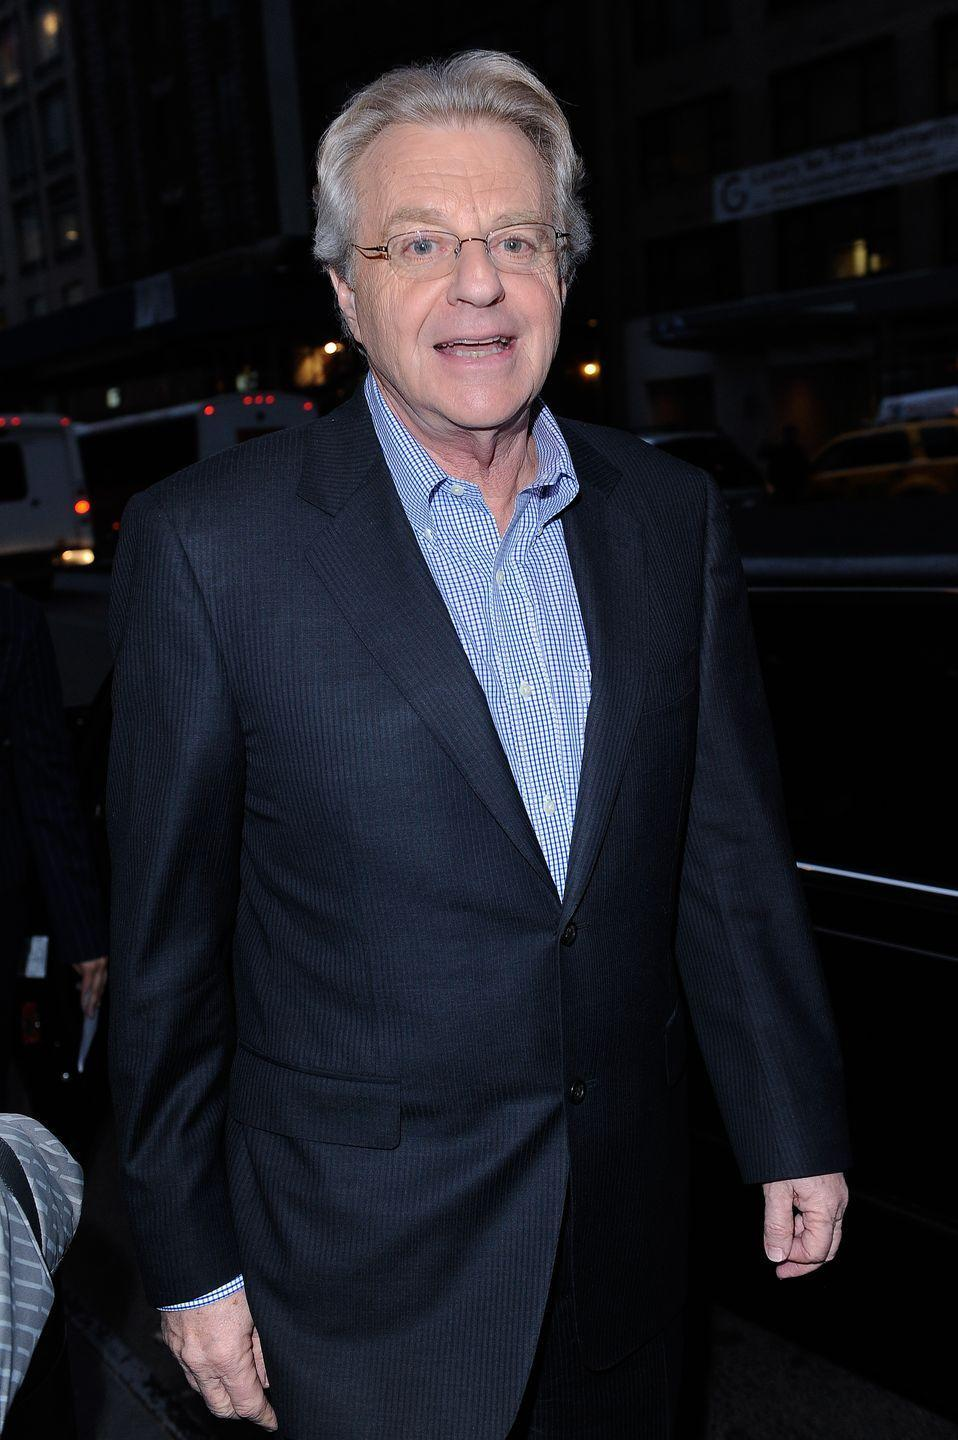 <p>It may come as a surprise that controversial daytime talk show host, Jerry Springer, had a background in politics long before he started mediating domestic disputes. In 1970, Springer ran for Congress, and although things didn't go his way the first time around, he was the mayor of Cincinnati, Ohio from 1971 to 1981. </p>